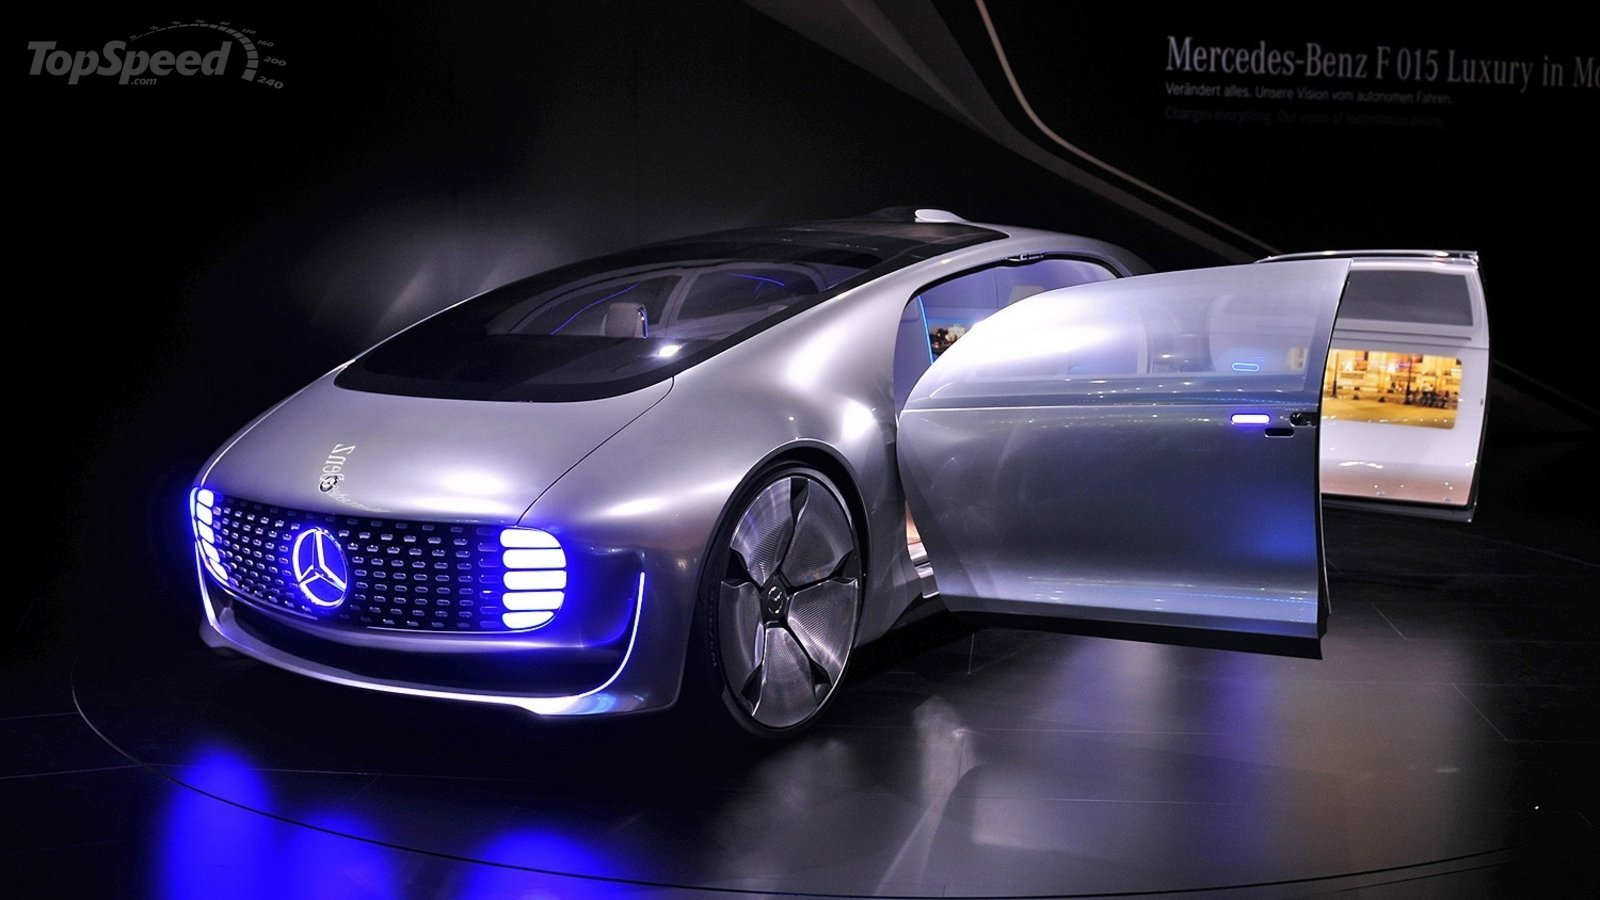 Mercedes F 015 >> 2015 Mercedes-Benz F 015 Luxury In Motion Review - Gallery - Top Speed